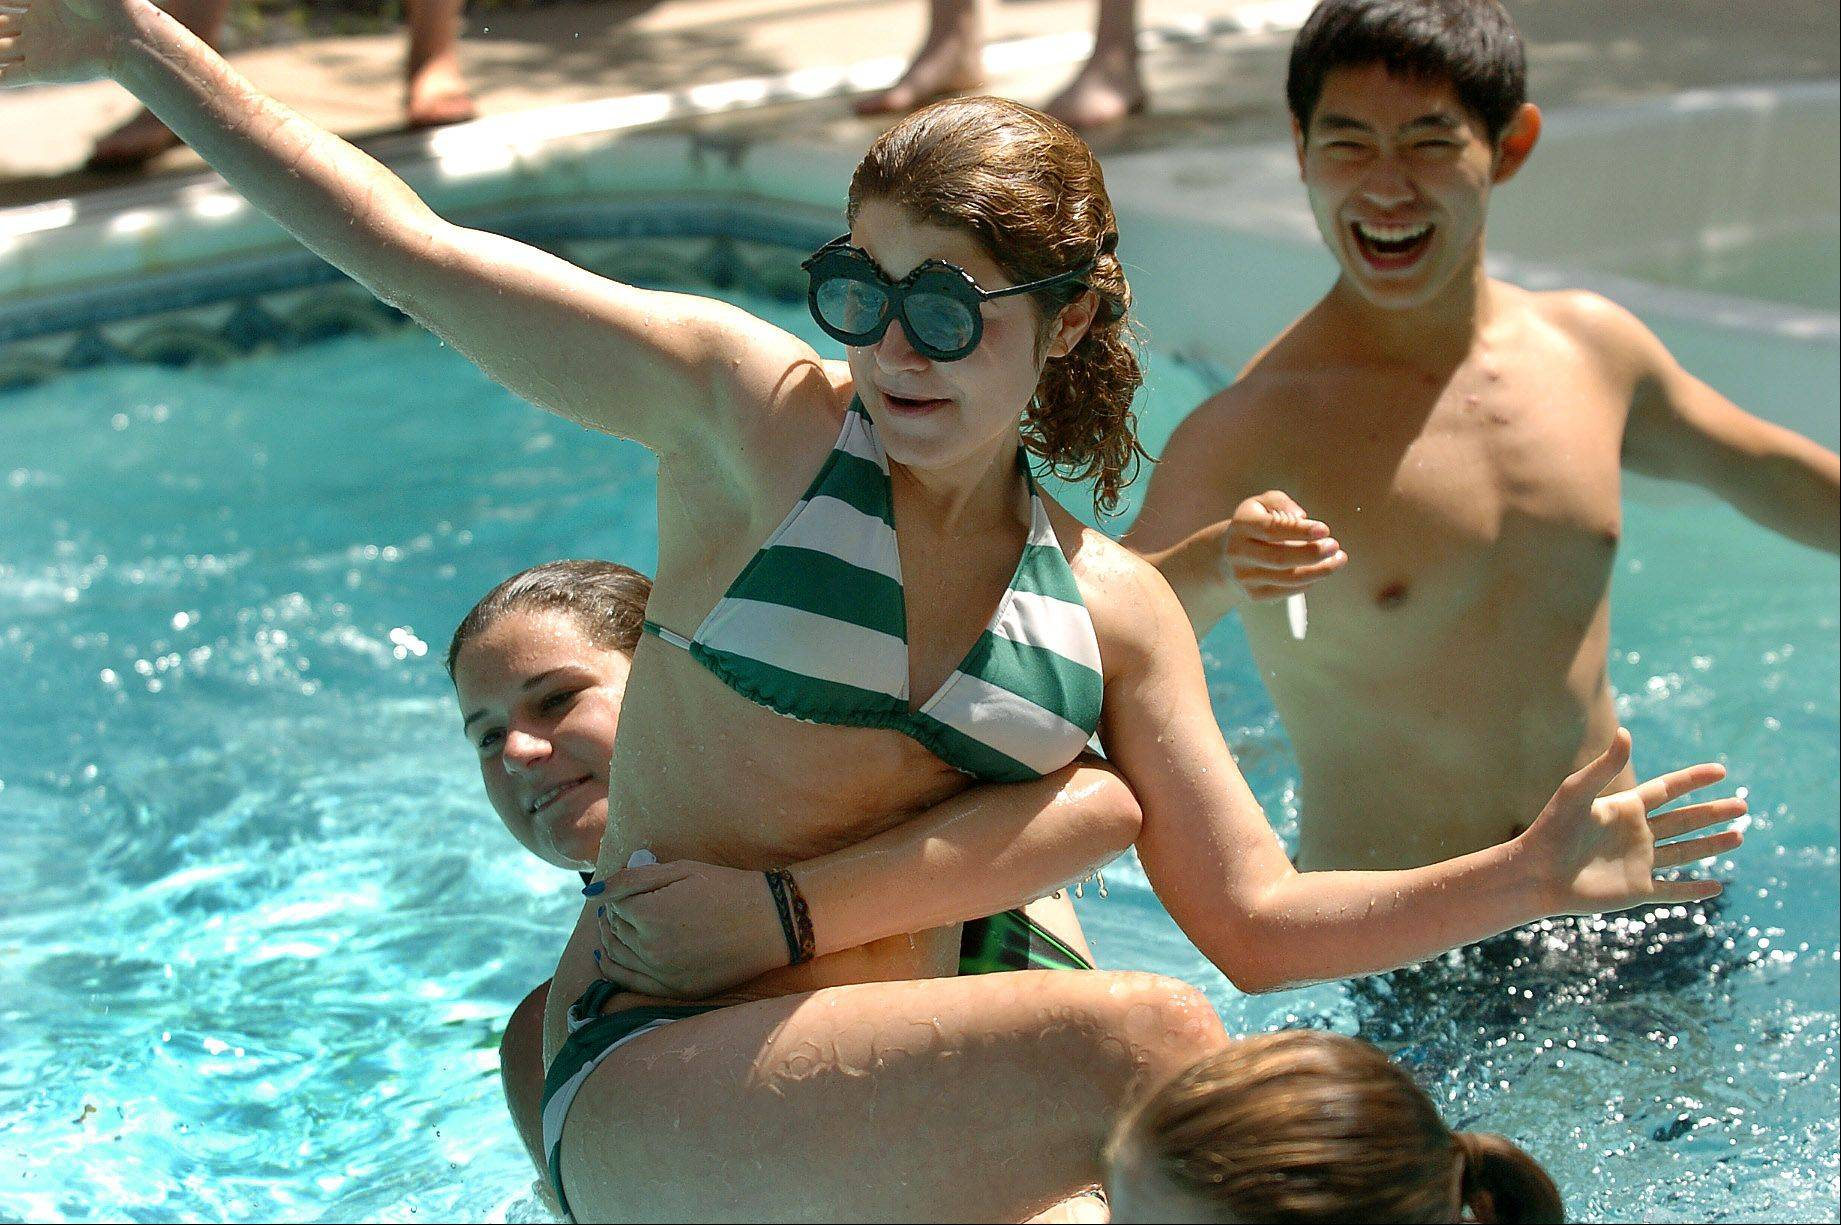 Jackie Gallo, a Triwizard champion, gets flung around in the pool while trying to retrieve items related to her second task, as Fremd High graduates band together to compete in a Harry Potter-based competition in celebration of the final film.